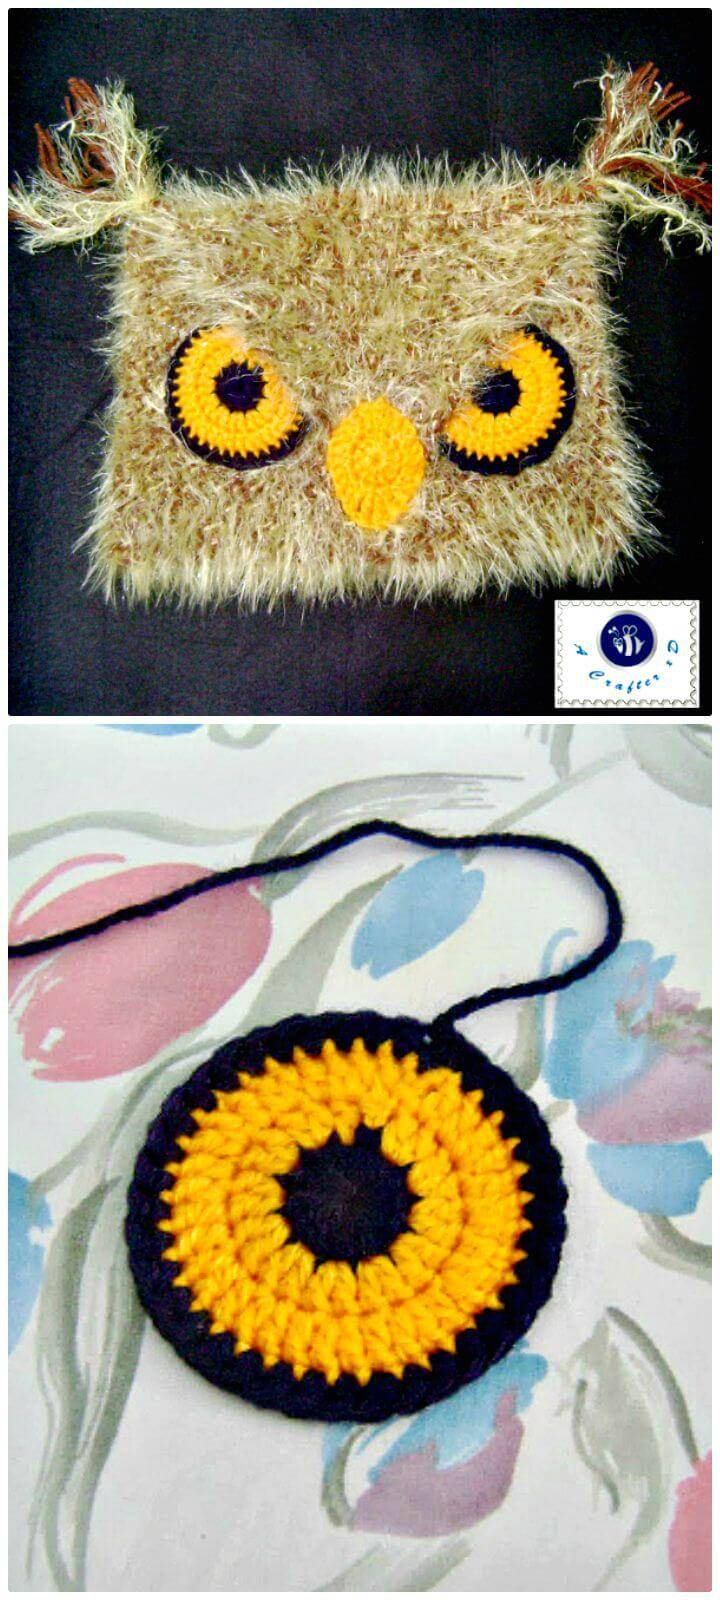 Crochet Angry Owl Hat - Free Pattern